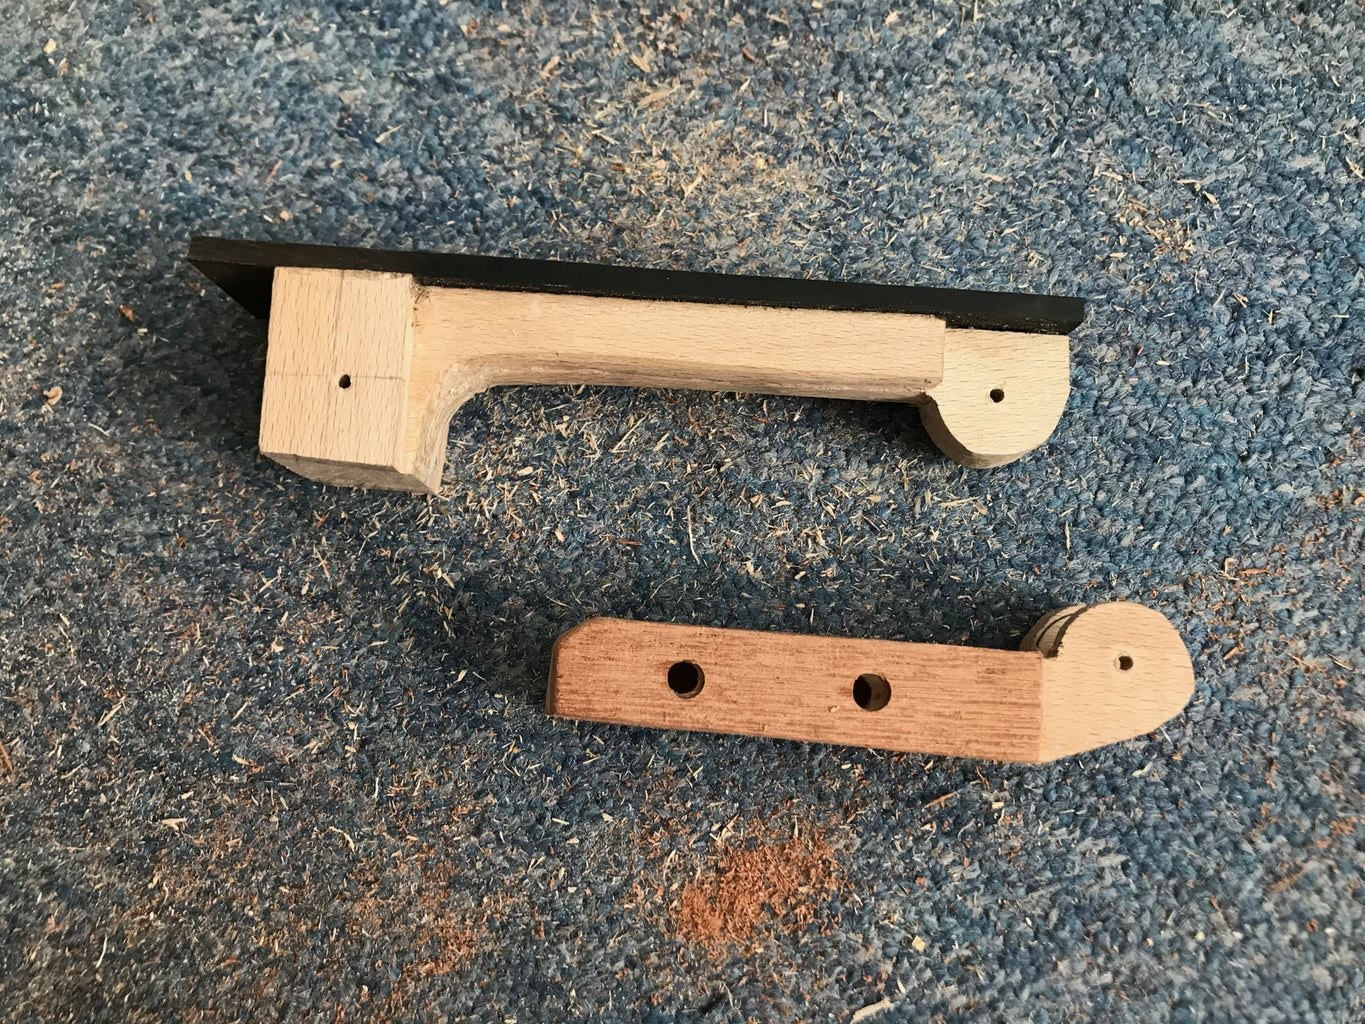 Build the Headstock and the Neck